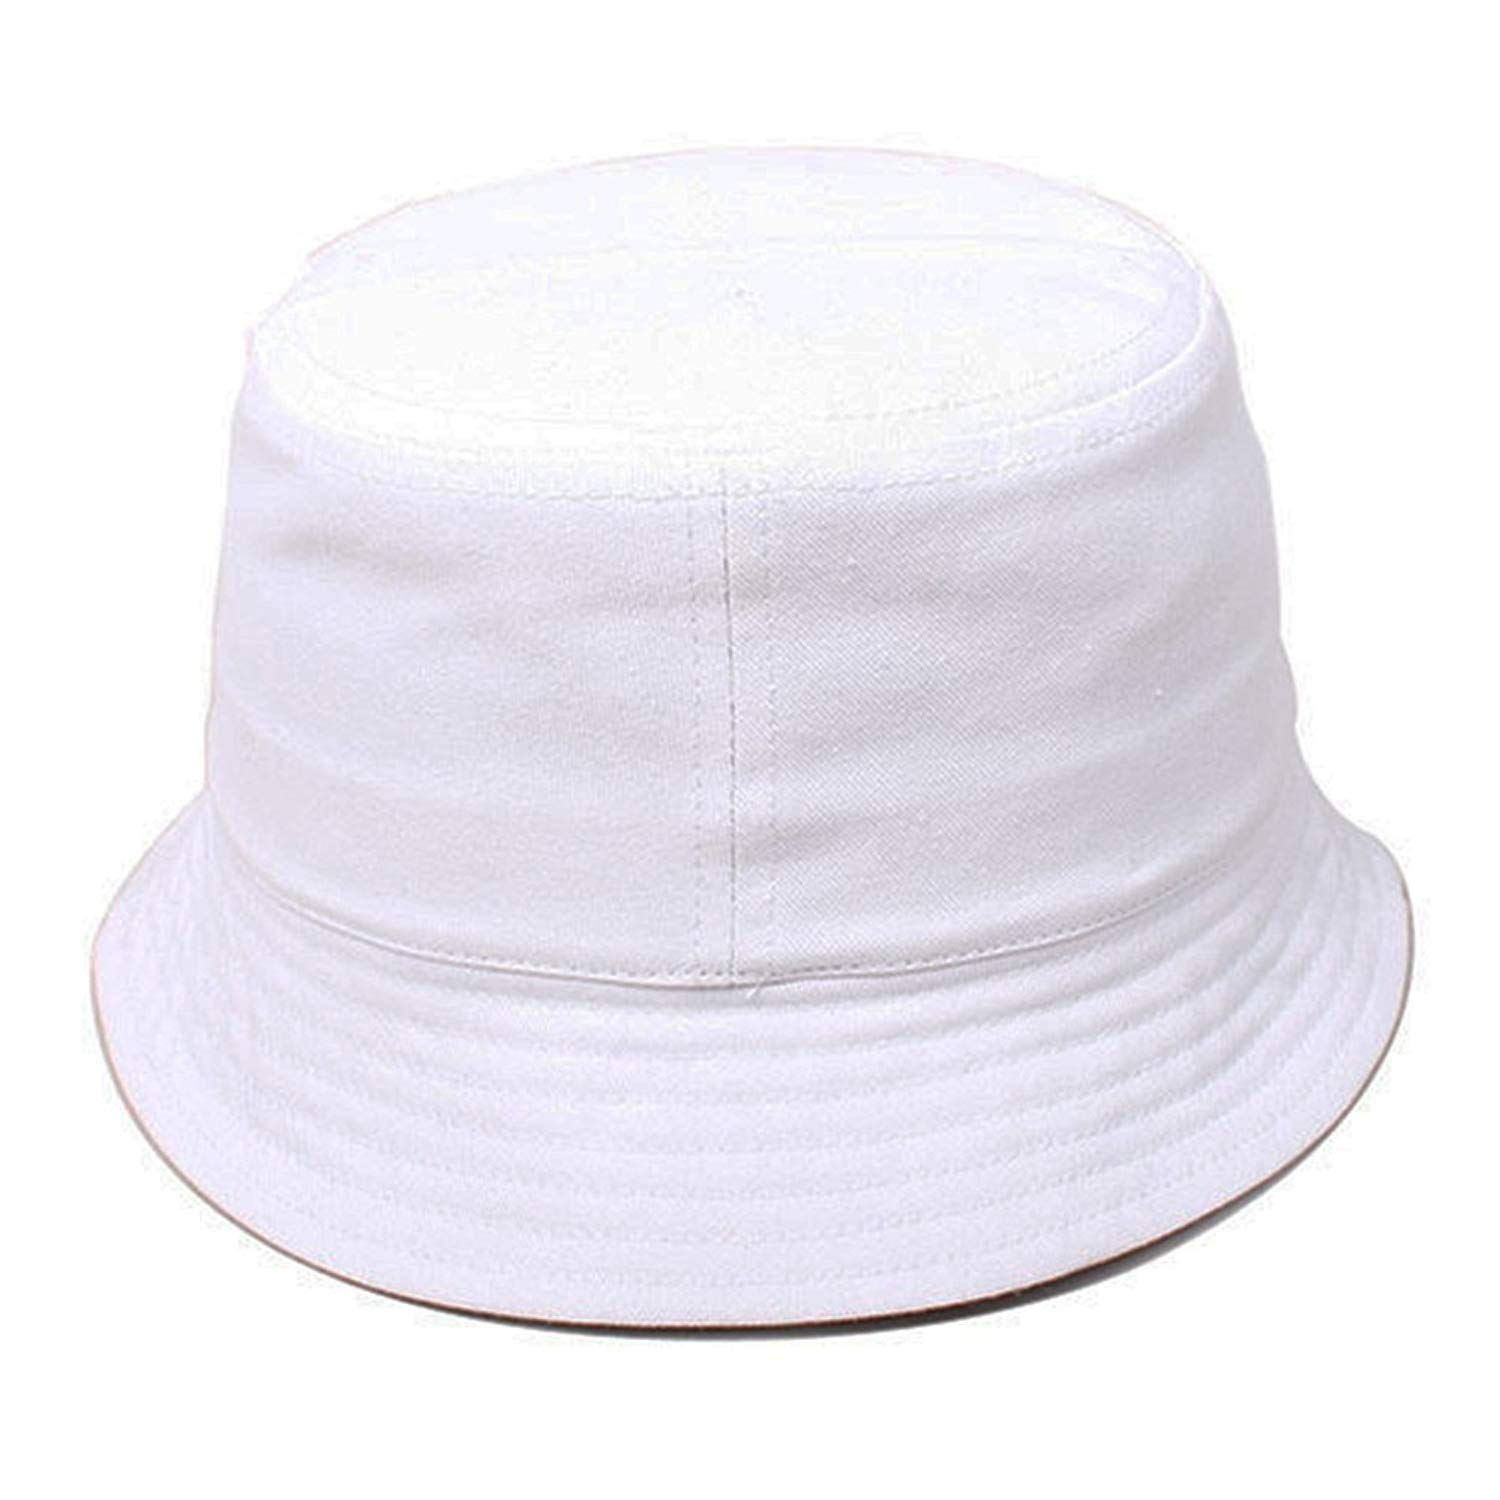 15829a005ae Get Quotations · LUOEM Baby Toddler Kids Sun Hat Summer Cap Sun Protection  Brim Hat (White)